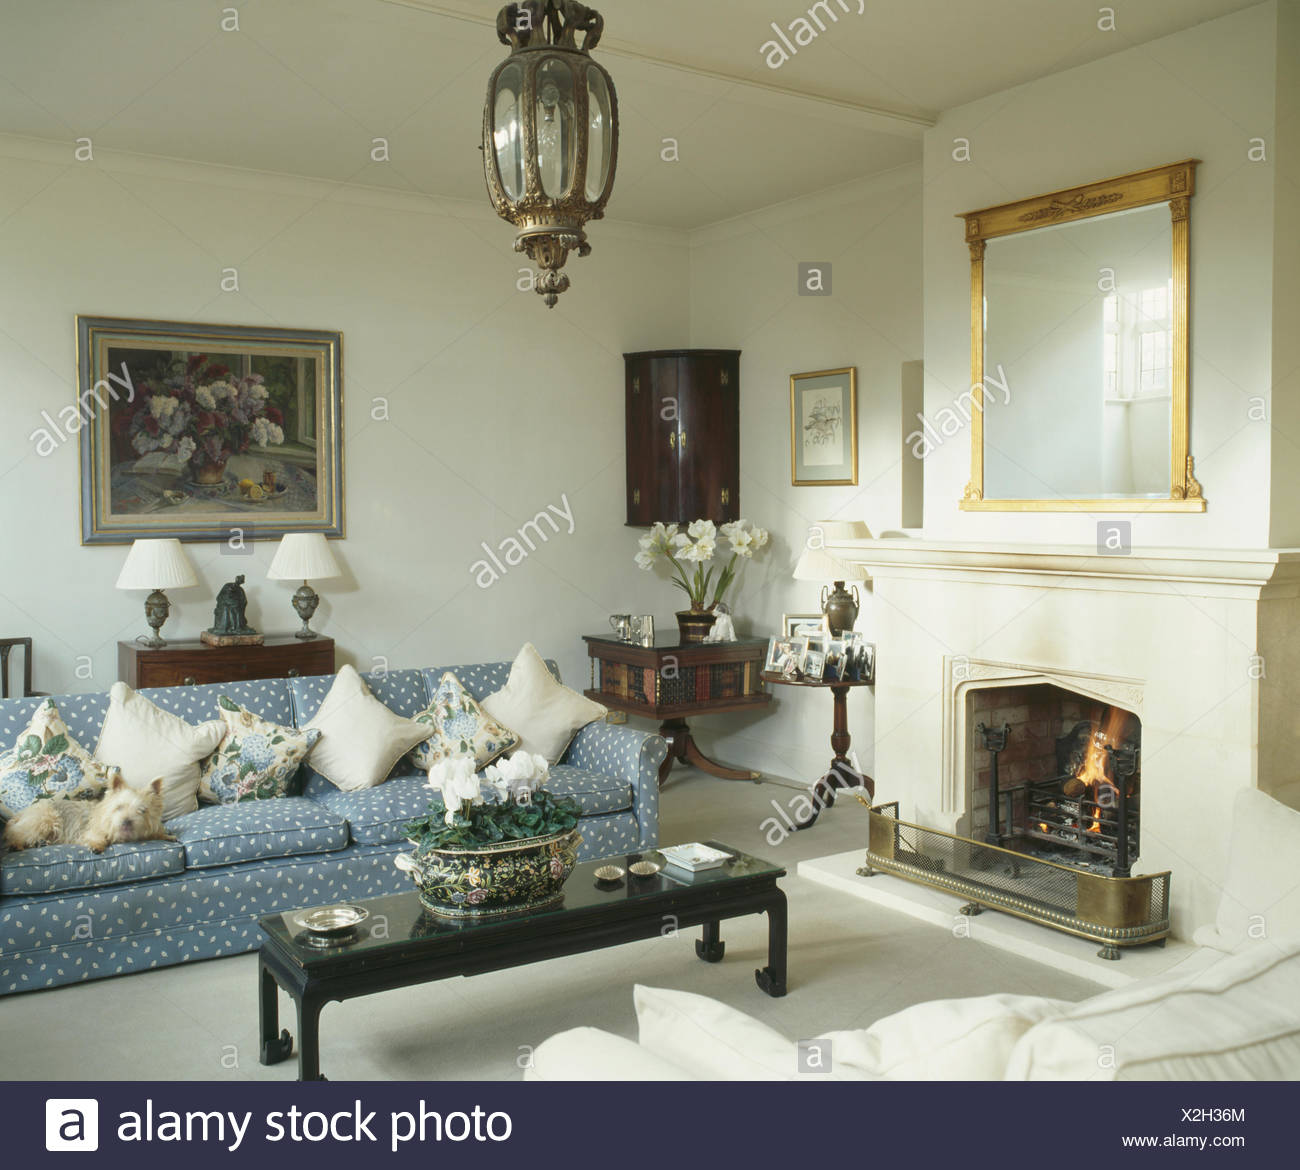 Beau Cream Cushions On Patterned Blue Sofa In Cream Living Room With Fireplace  And Brass Lantern